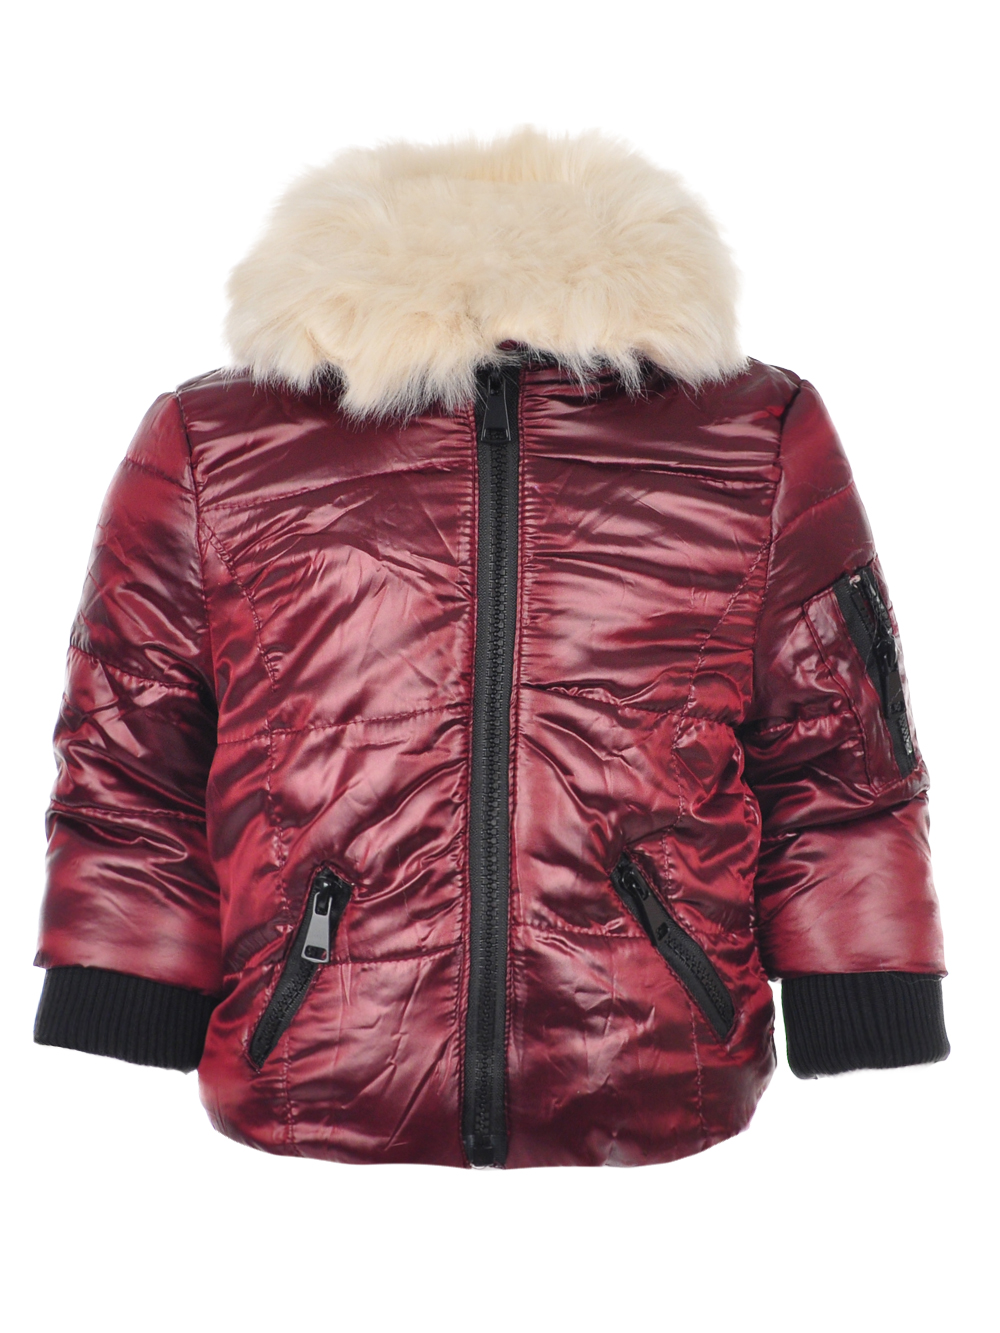 Urban Republic Baby Girls' Insulated Jacket